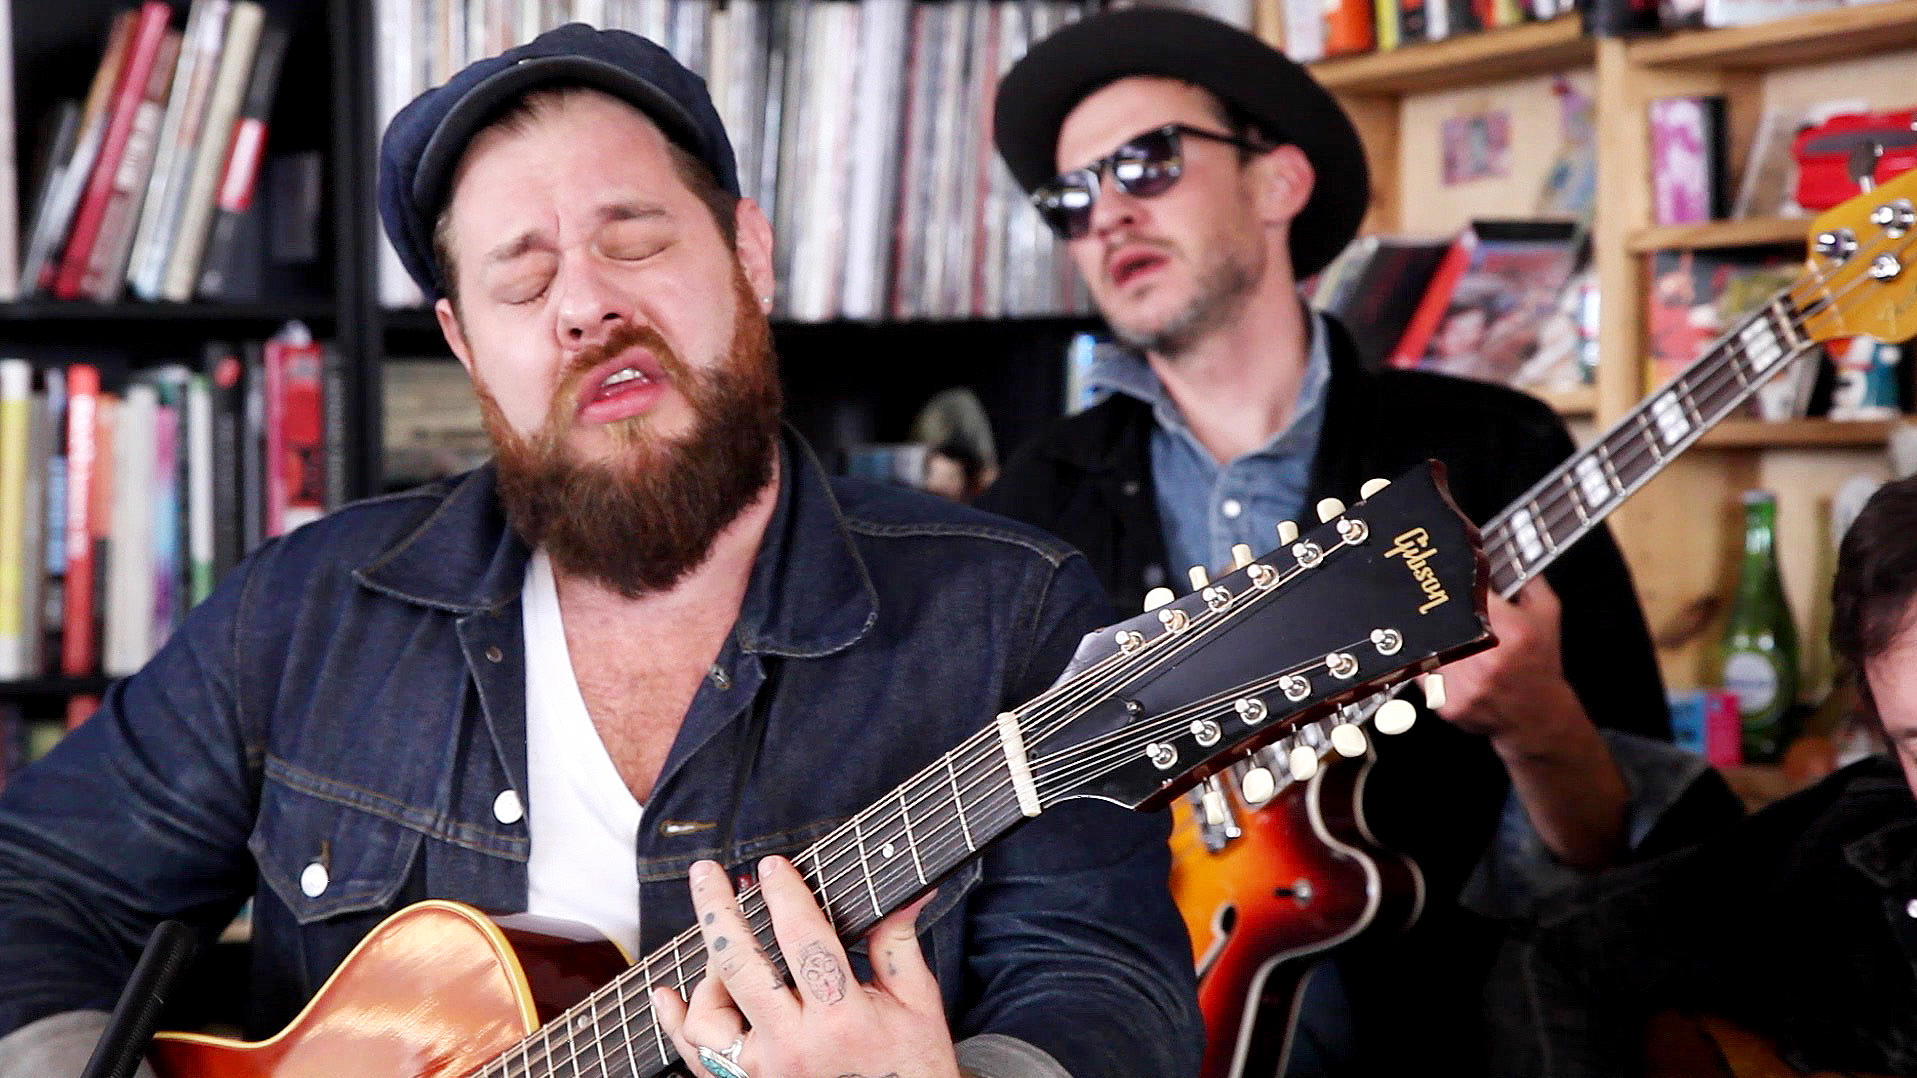 Nathaniel Rateliff & The Night Sweats: Tiny Desk Concert | WUNC